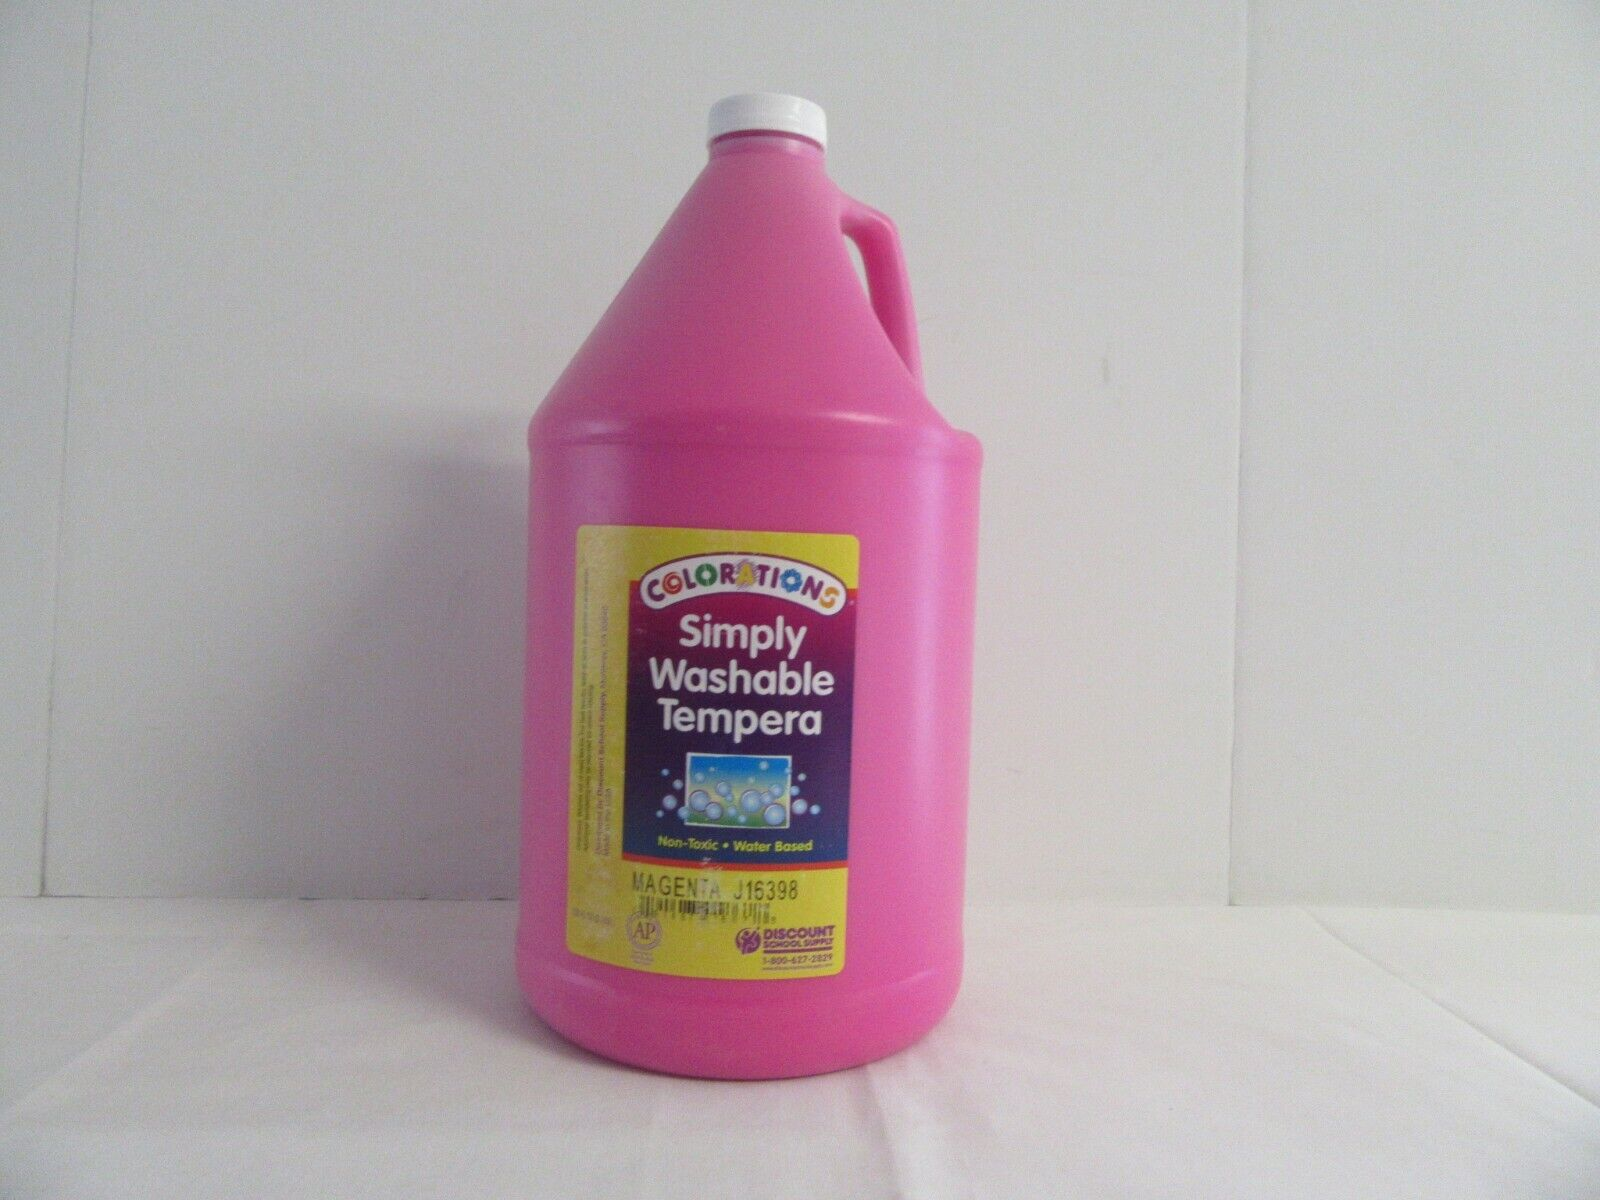 simply washable tempera paint 1 gallon pink